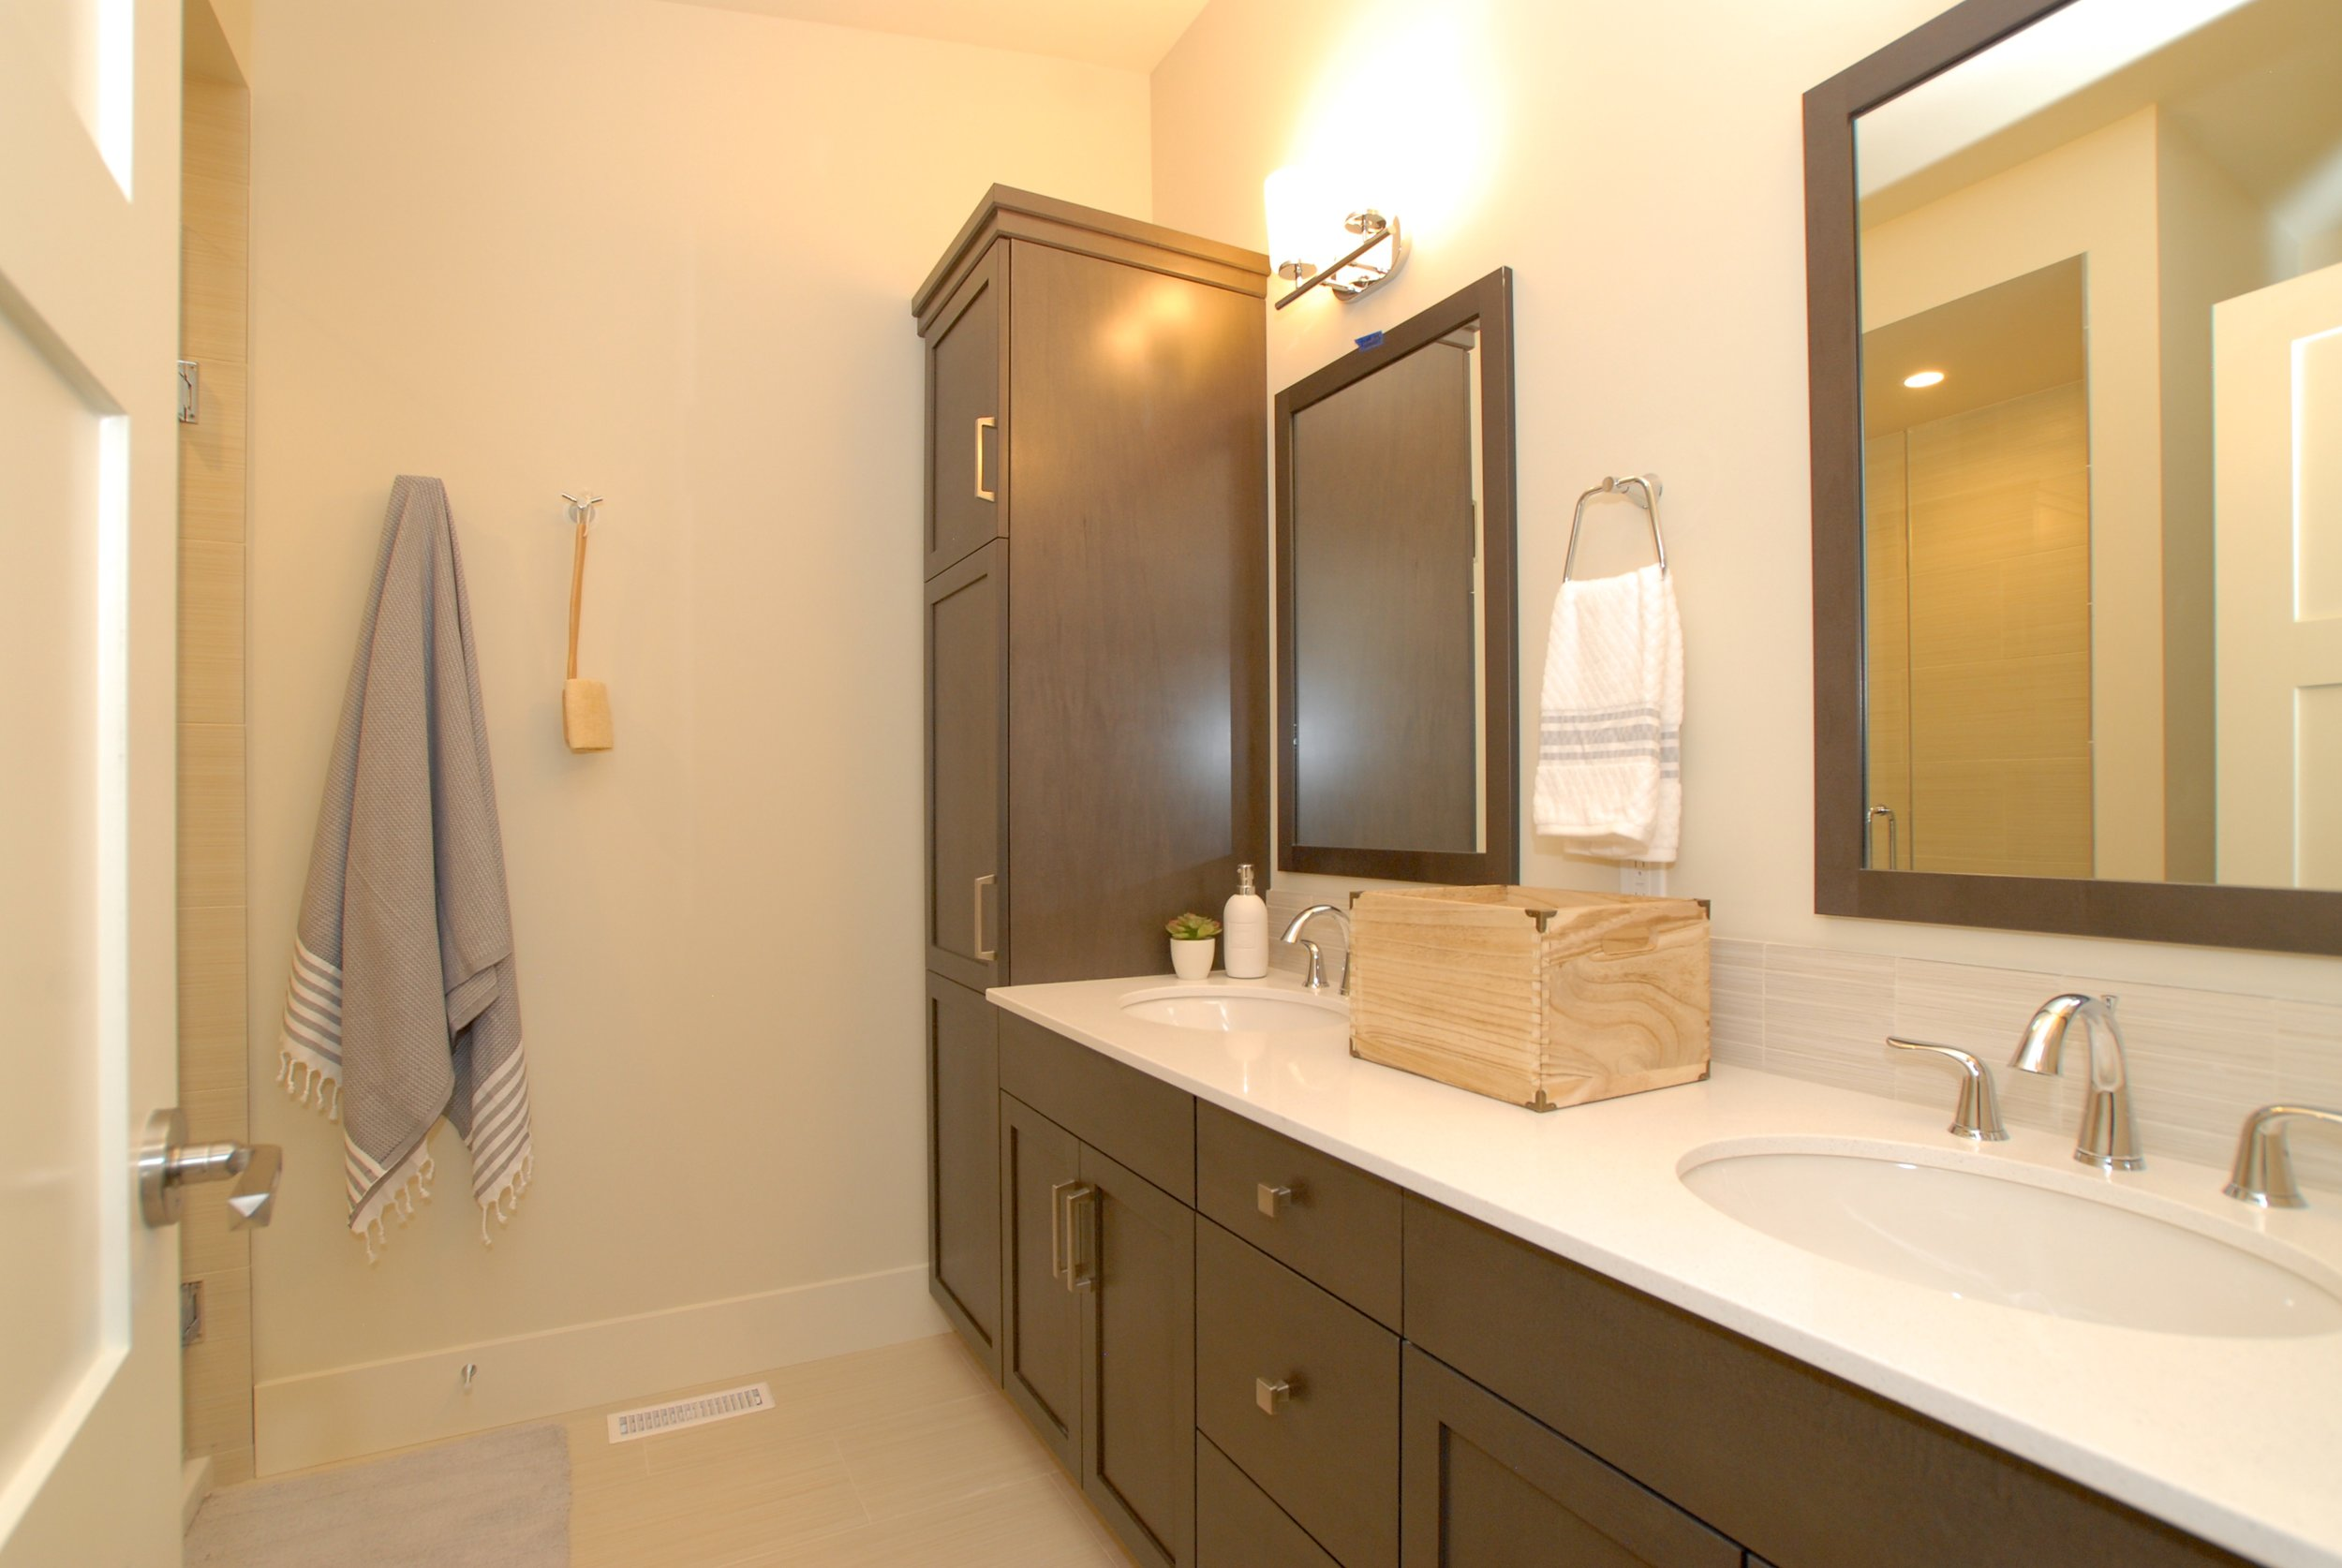 Double vanity with built-in linen tower